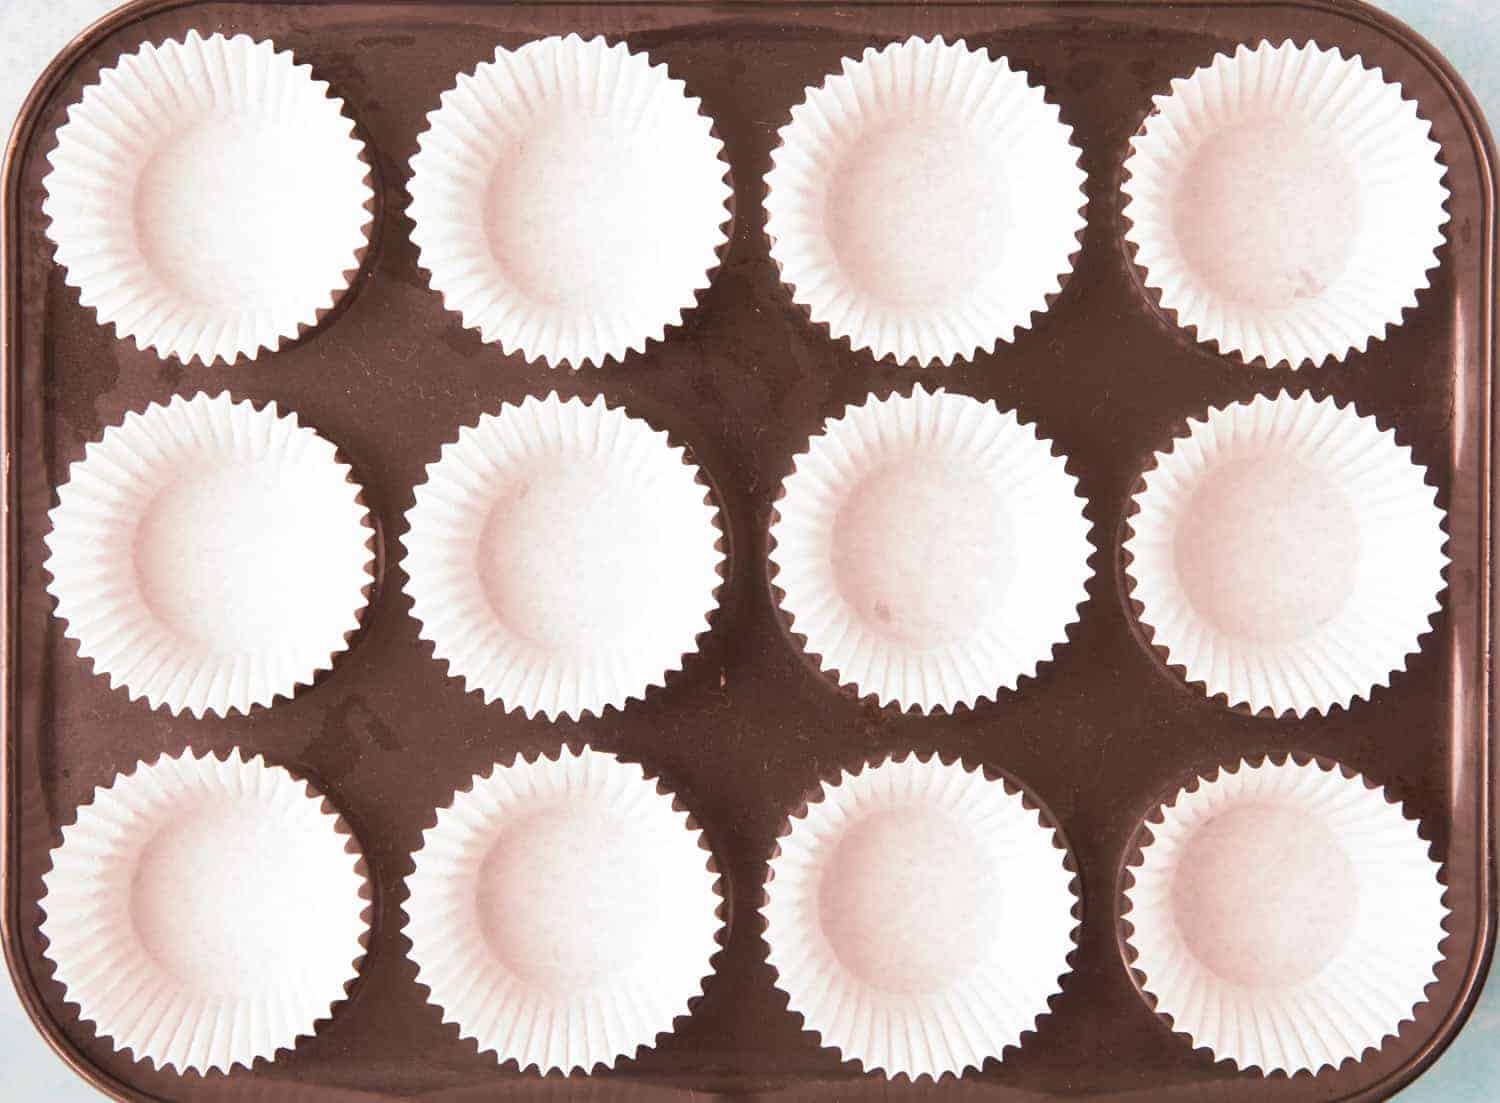 A 12 hole cupcake tray lined with 12 white cupcake cases